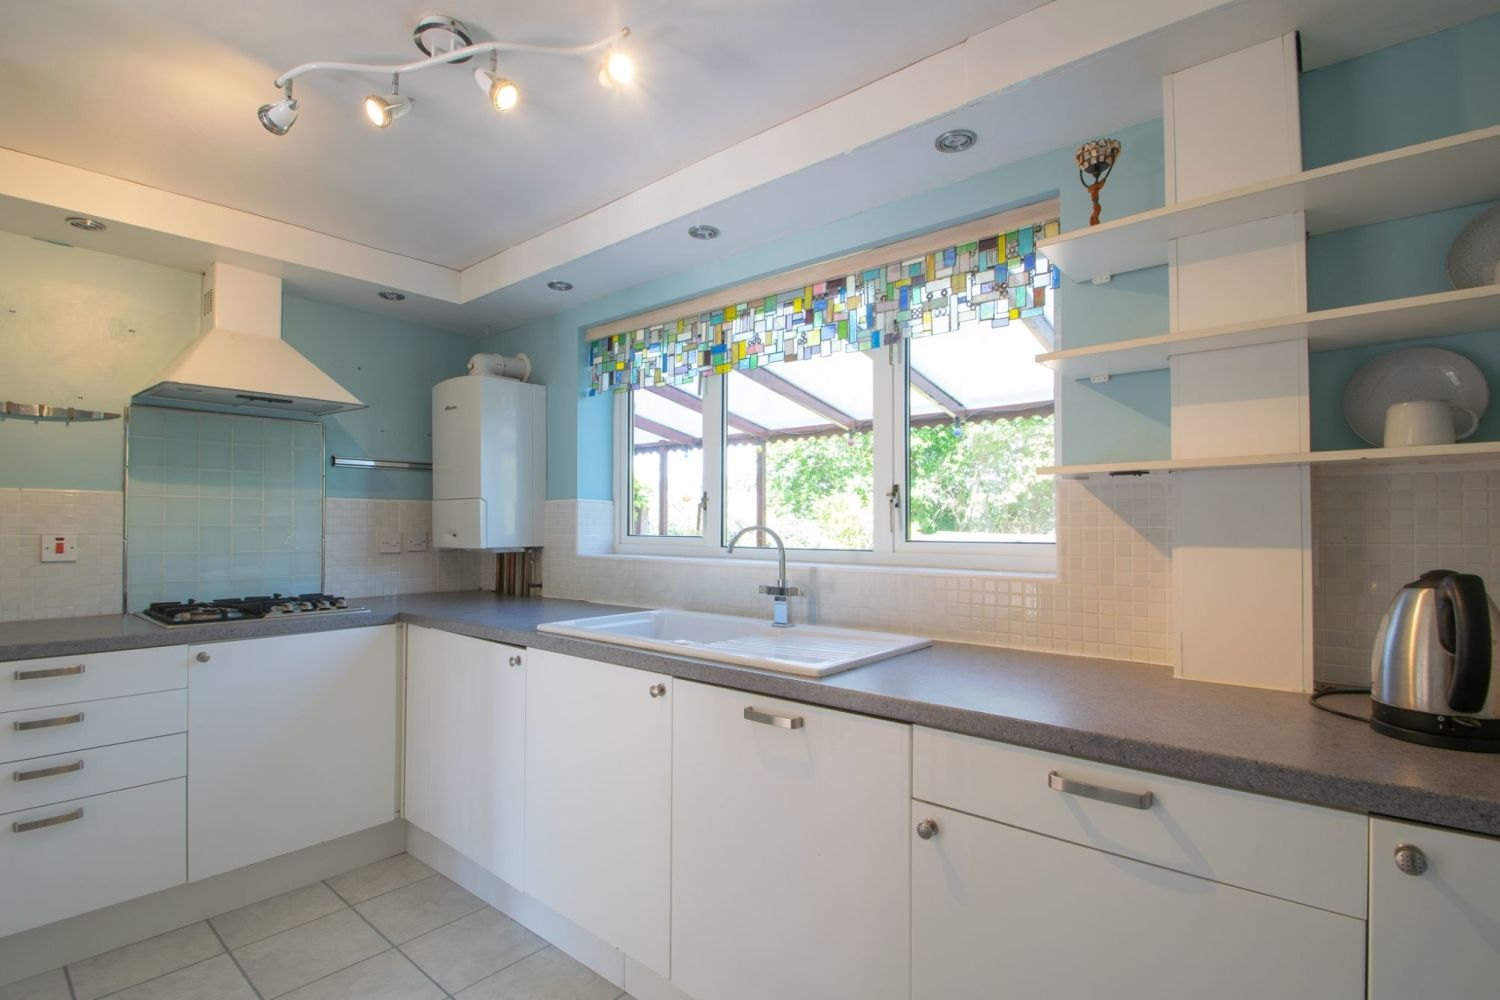 3 bed terraced for sale in Waverley Crescent, Romsley  - Property Image 6